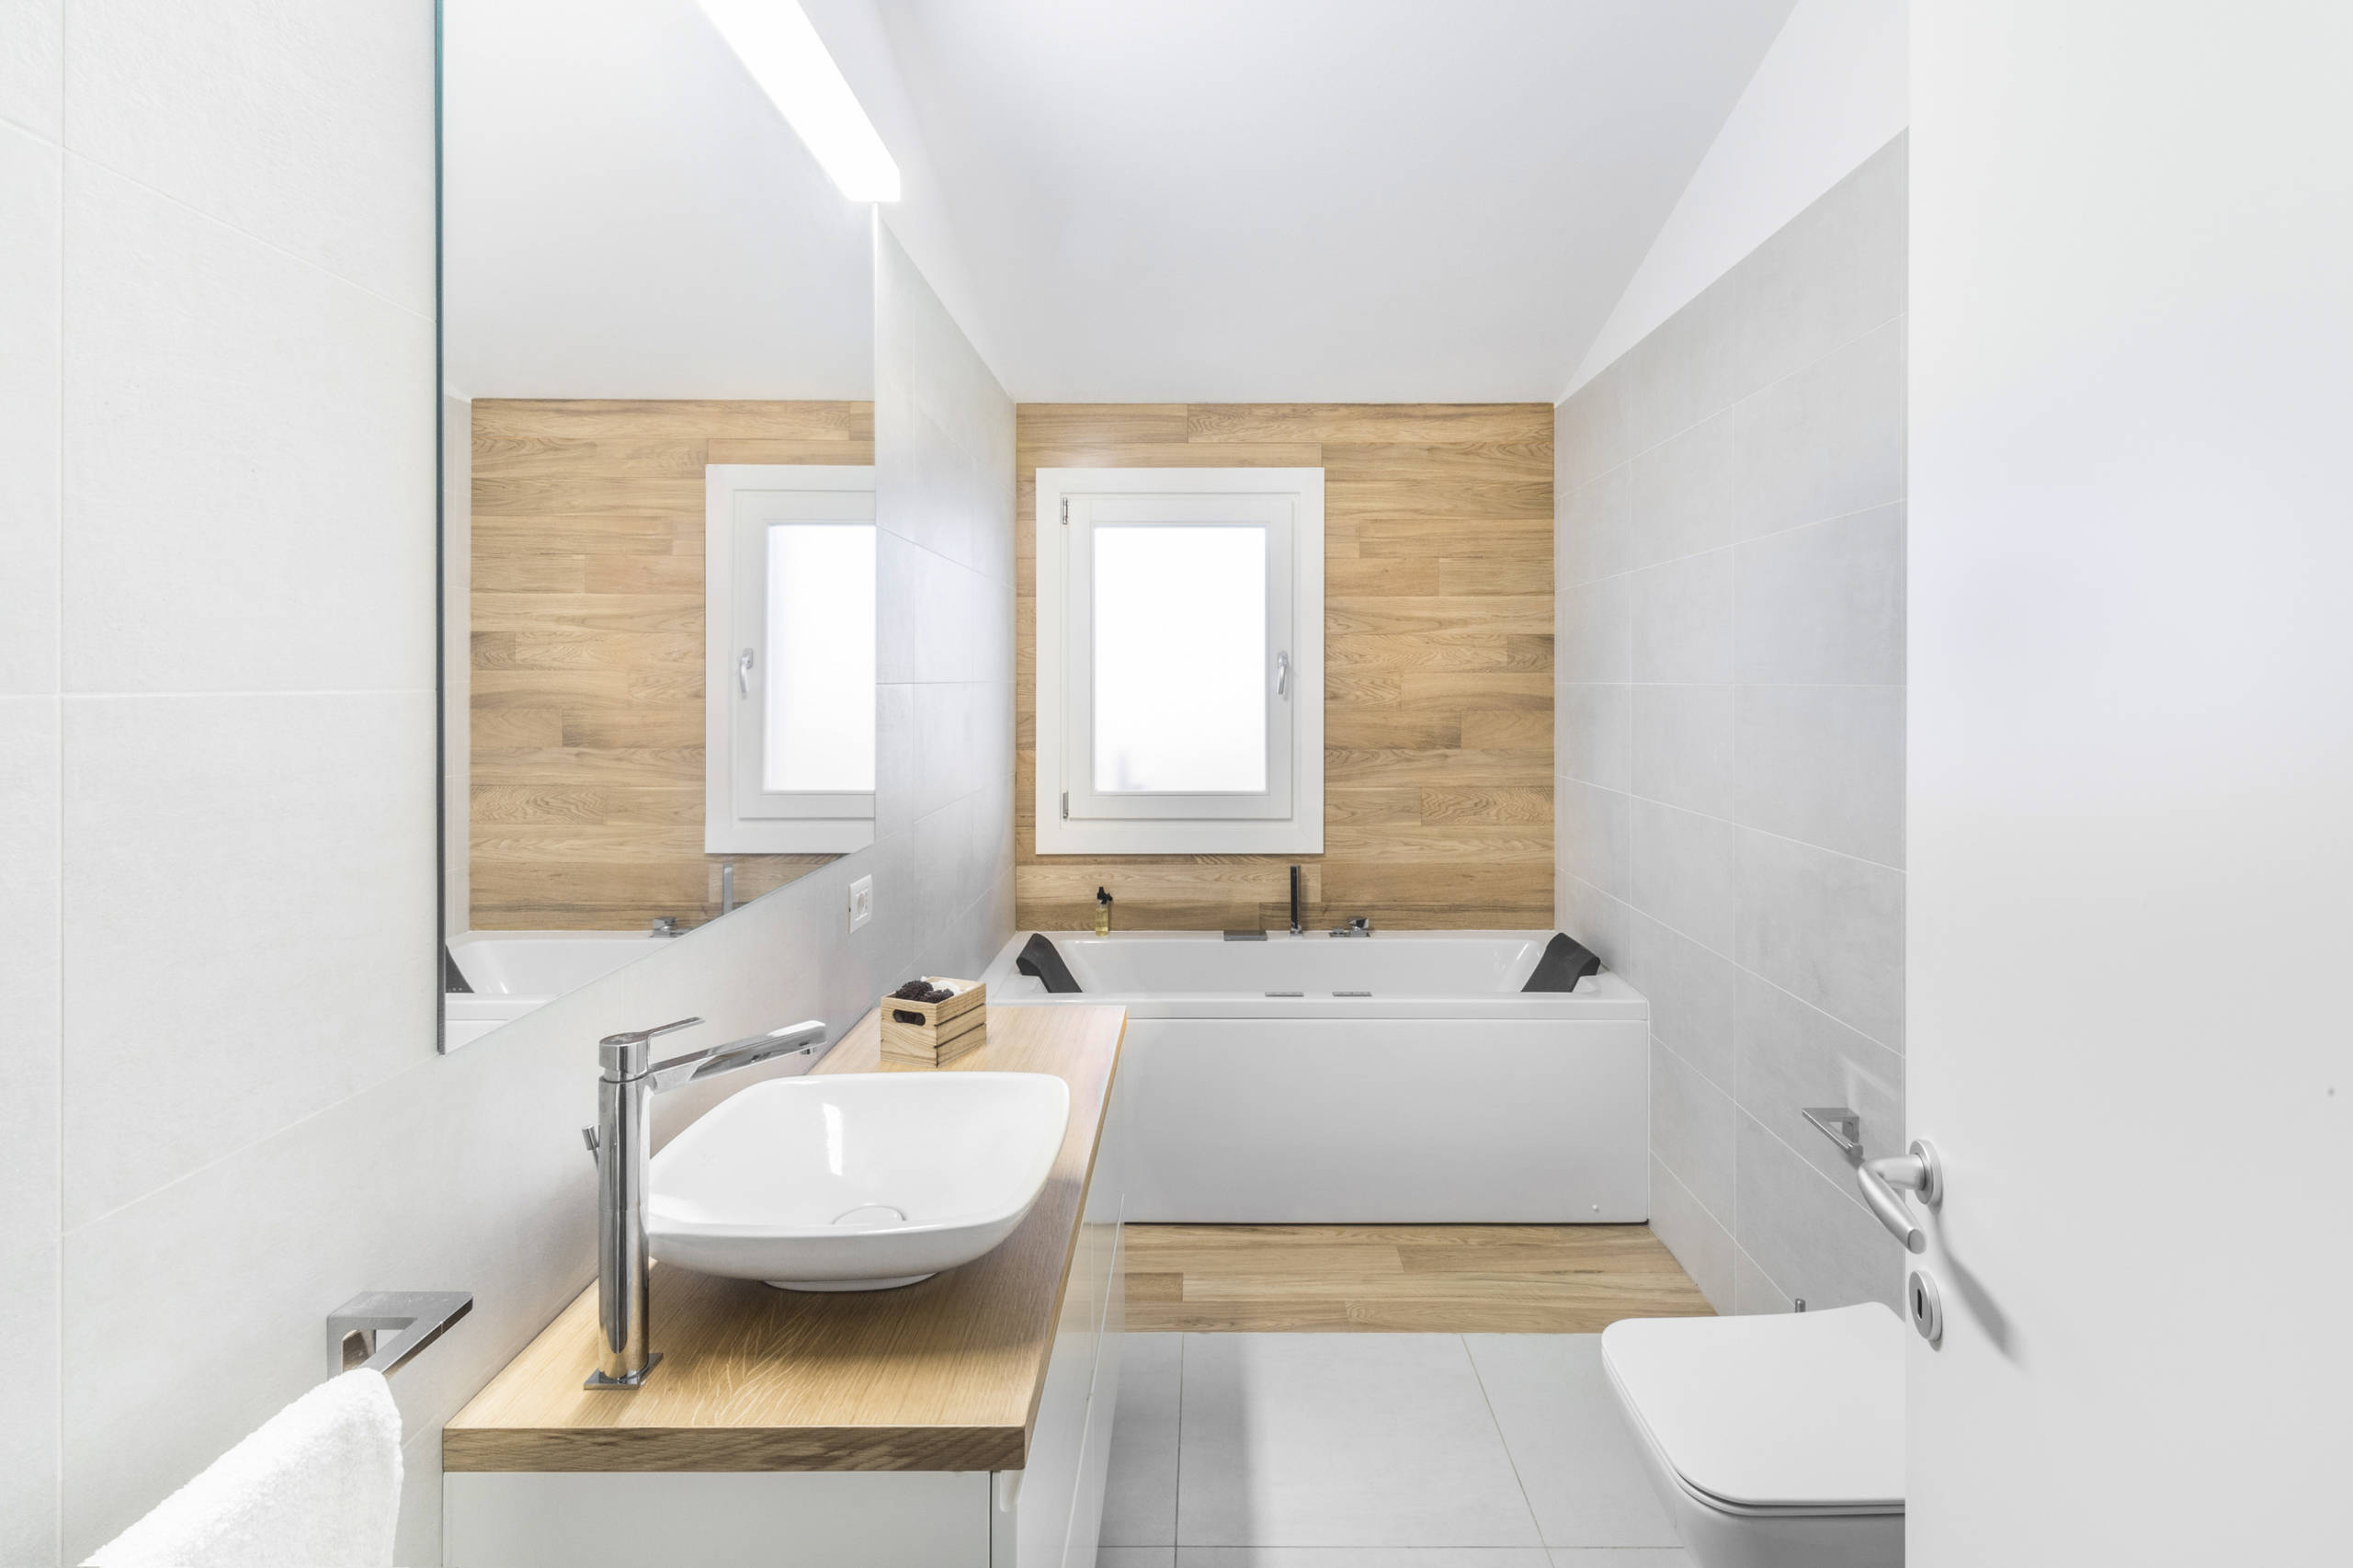 15 Wood Tile Showers For Your Bathroom